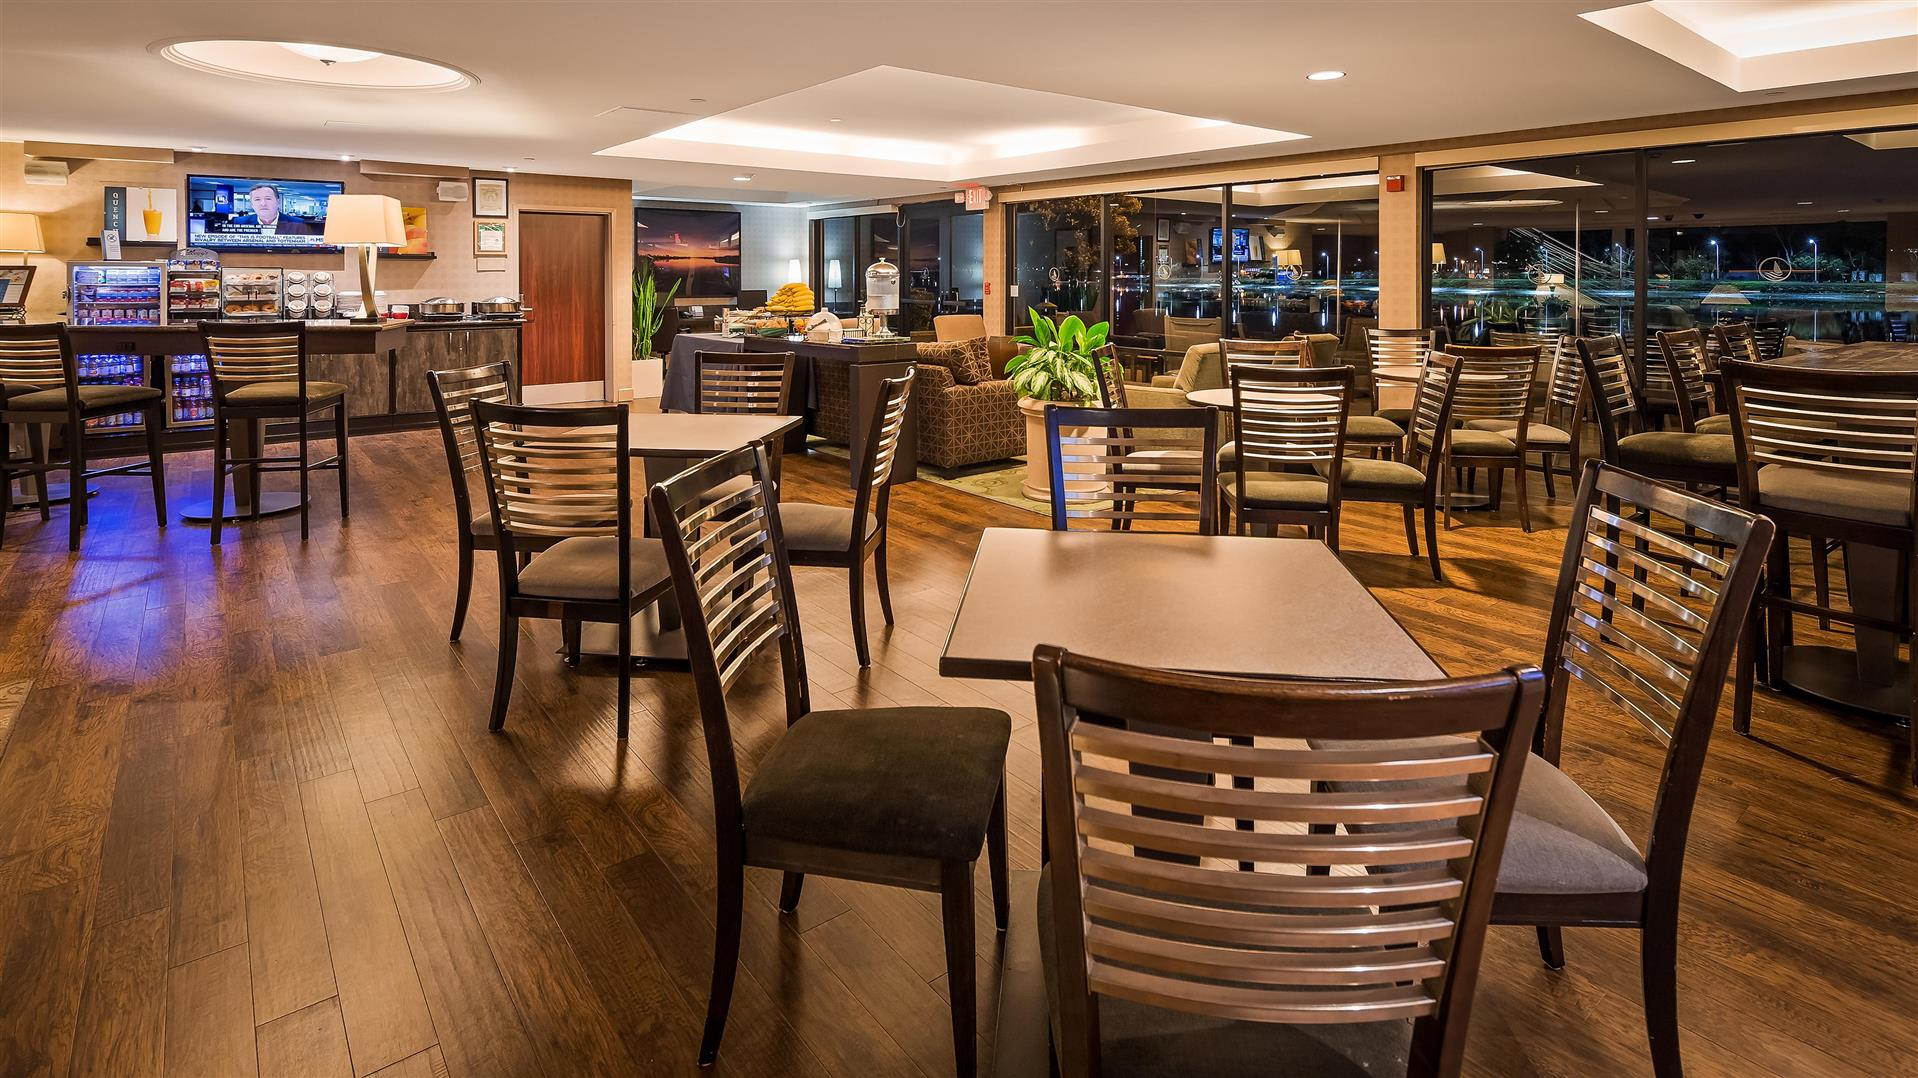 Lounge event space at Executive Inn in Bay Area